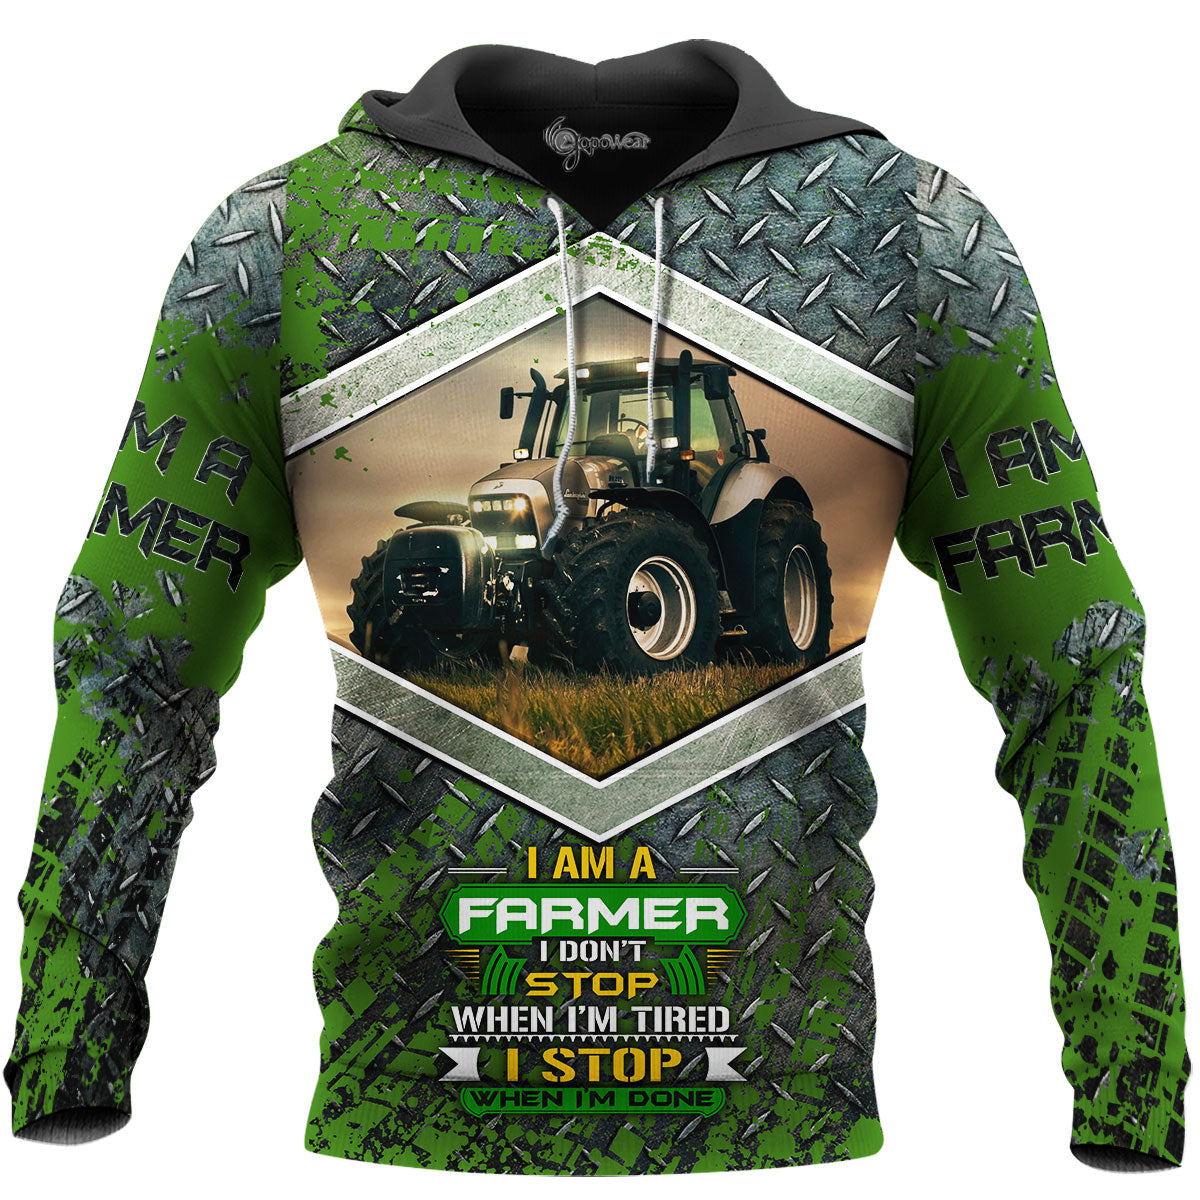 Gopowear Farmer_Beautiful-Tractor_SYL1411909_3d_hoodie.jpg